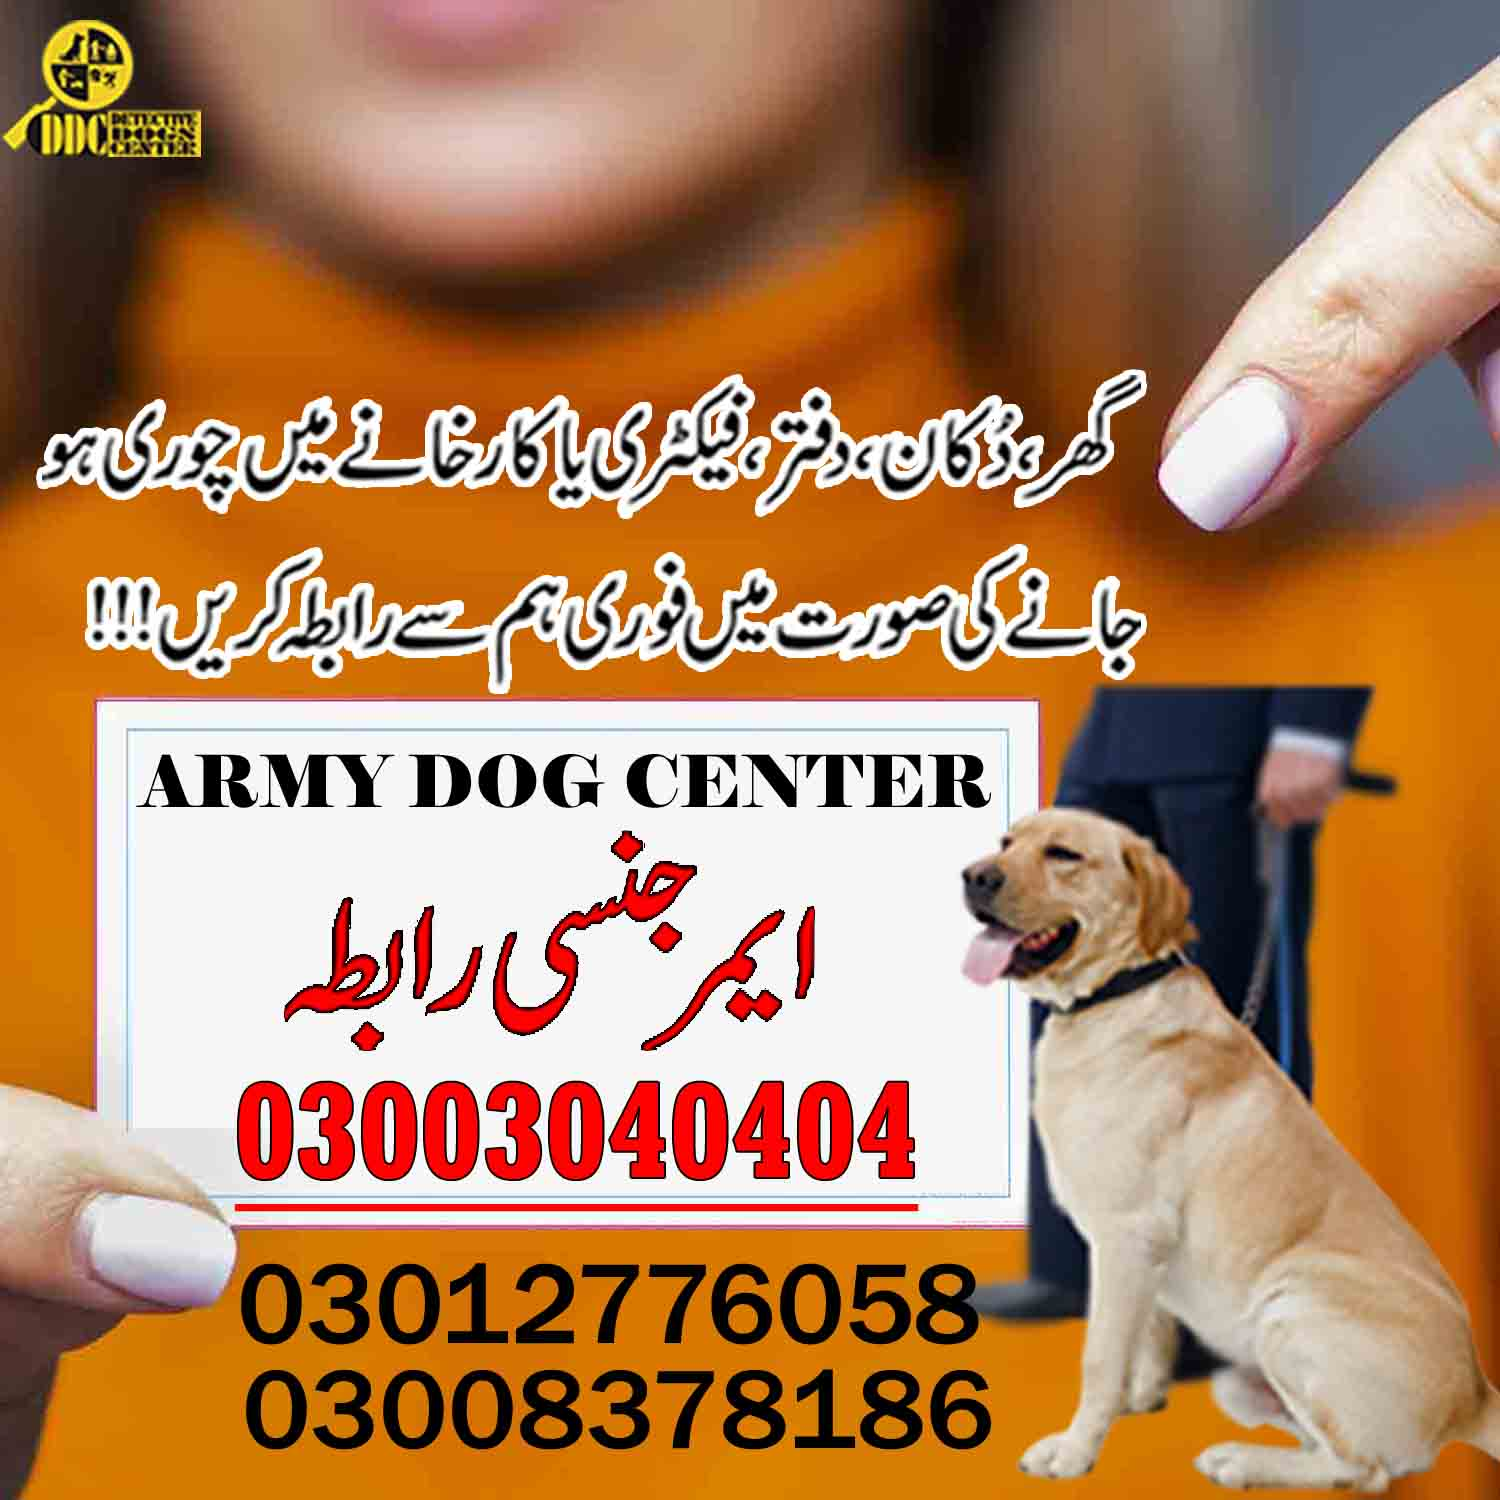 Top Army Dog Center Pakistan 03003040404 Call For More Informations